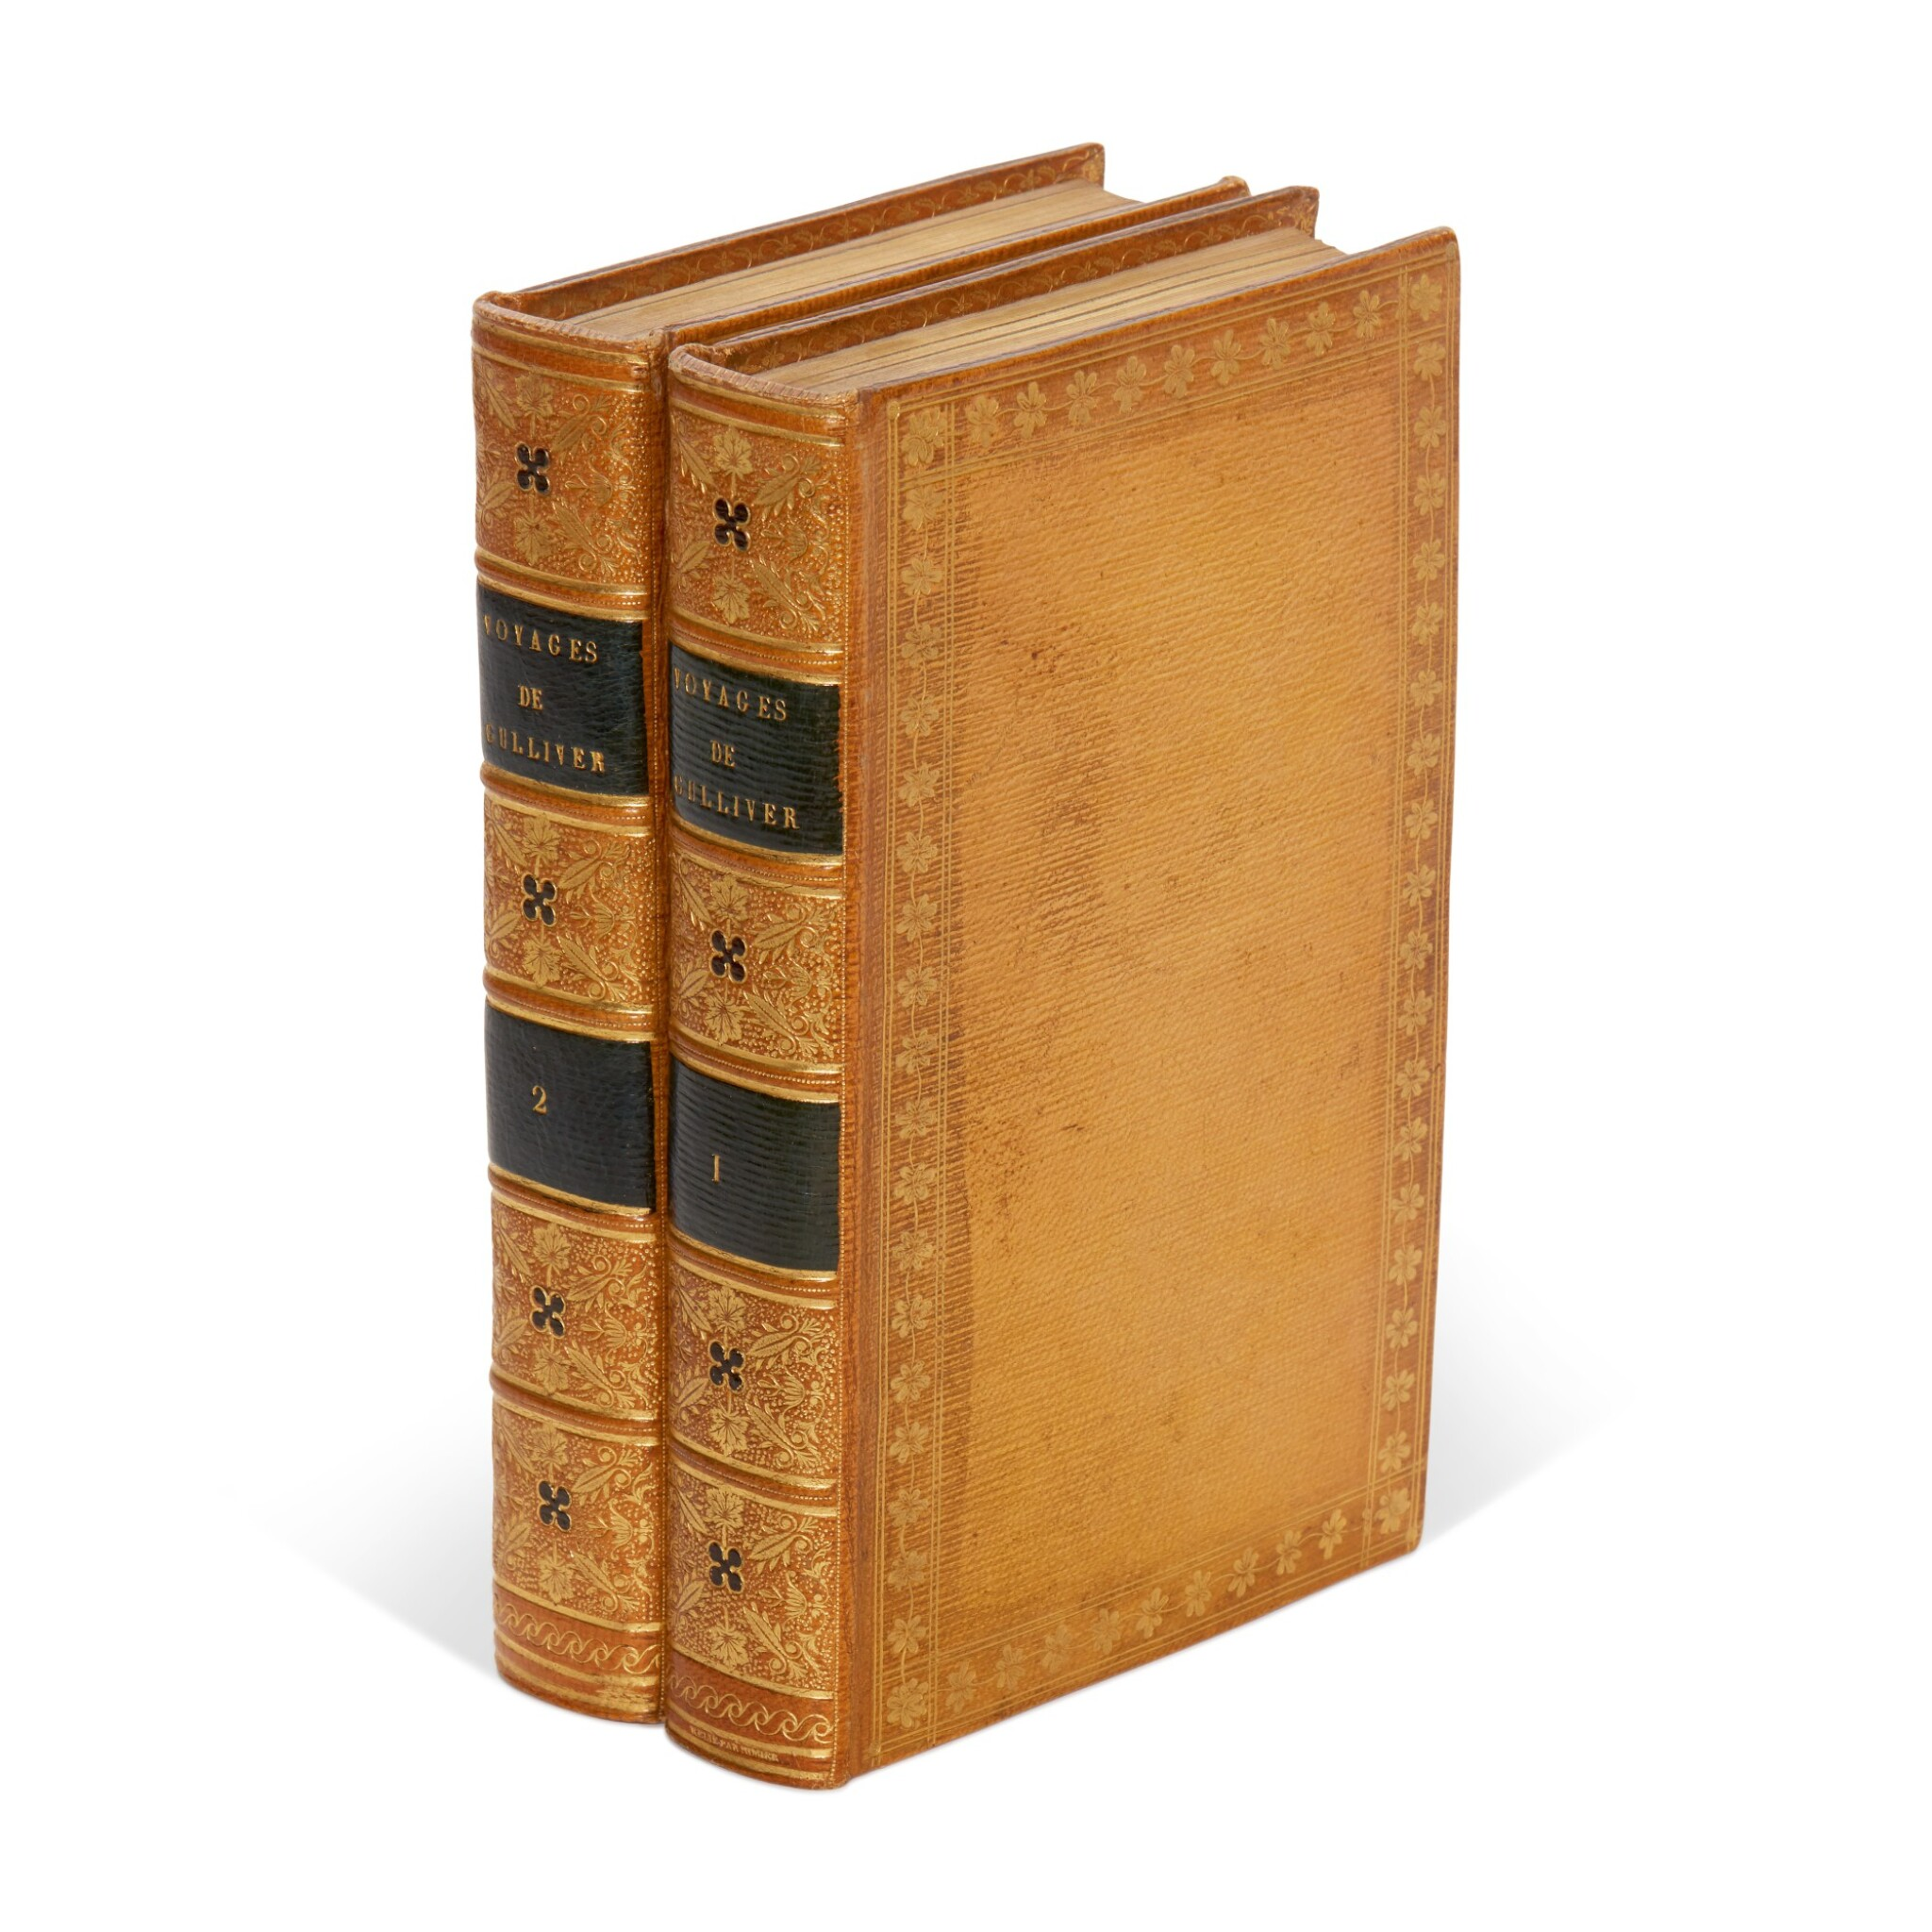 View full screen - View 1 of Lot 244. Swift, Voyages de Gulliver, Paris, 1797, contemporary citron morocco by Simier, 2 volumes.